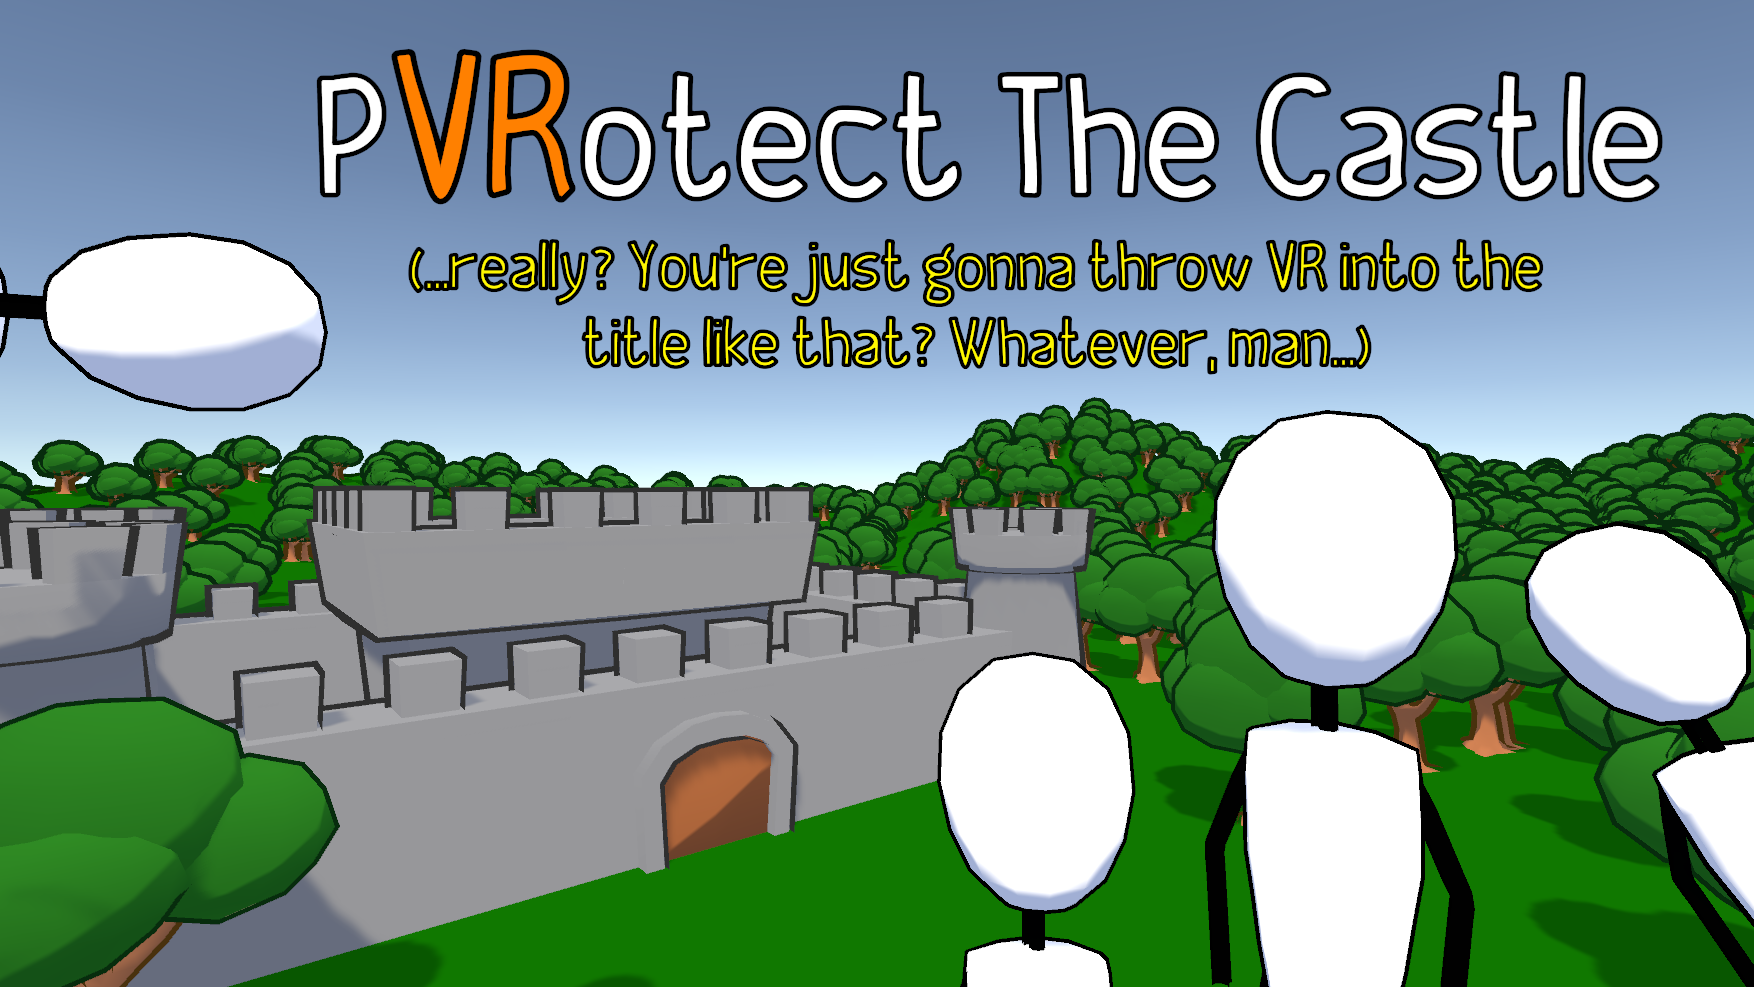 PVRotect The Castle